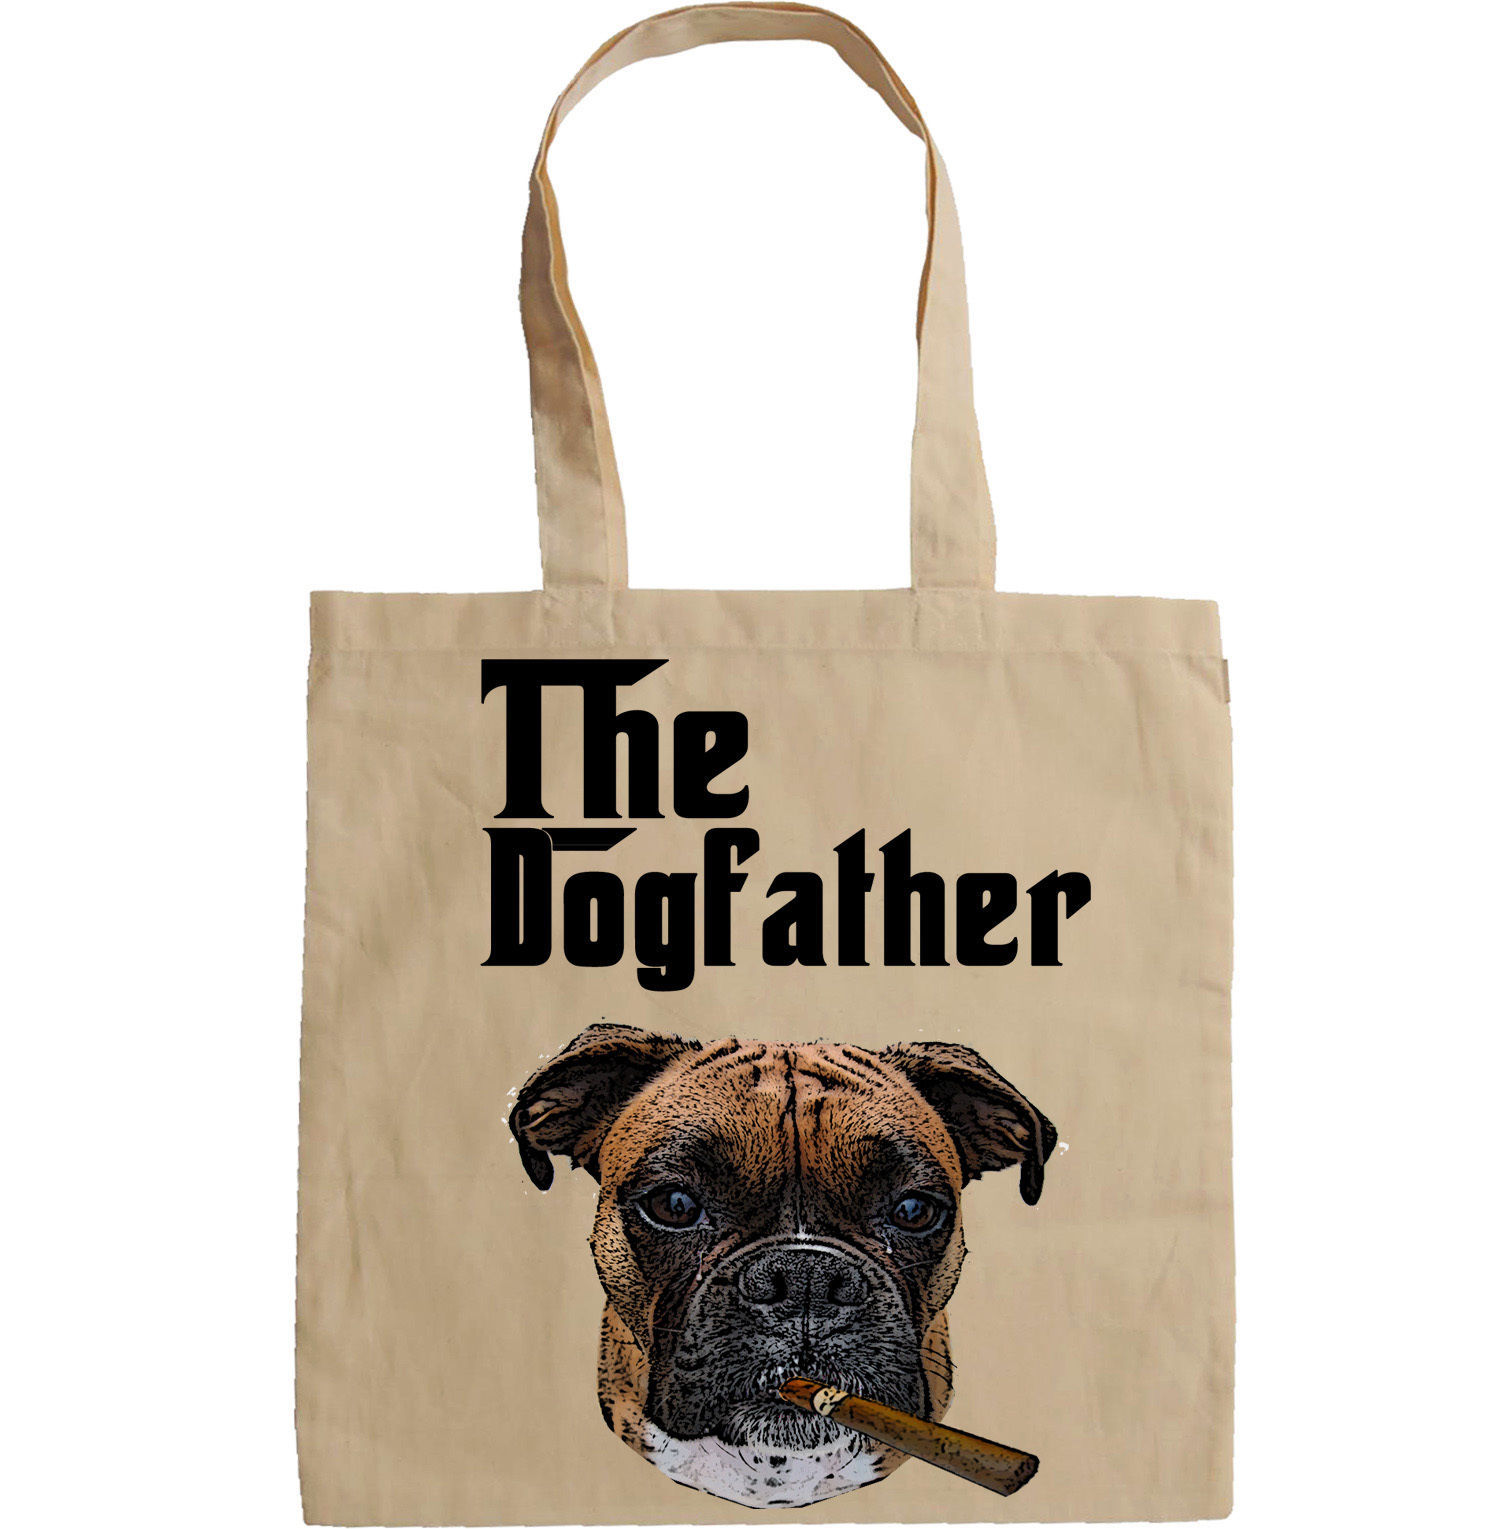 THE DOGFATHER MAFIA STYLE BOXER - NEW AMAZING GRAPHIC HAND BAG/TOTE BAG